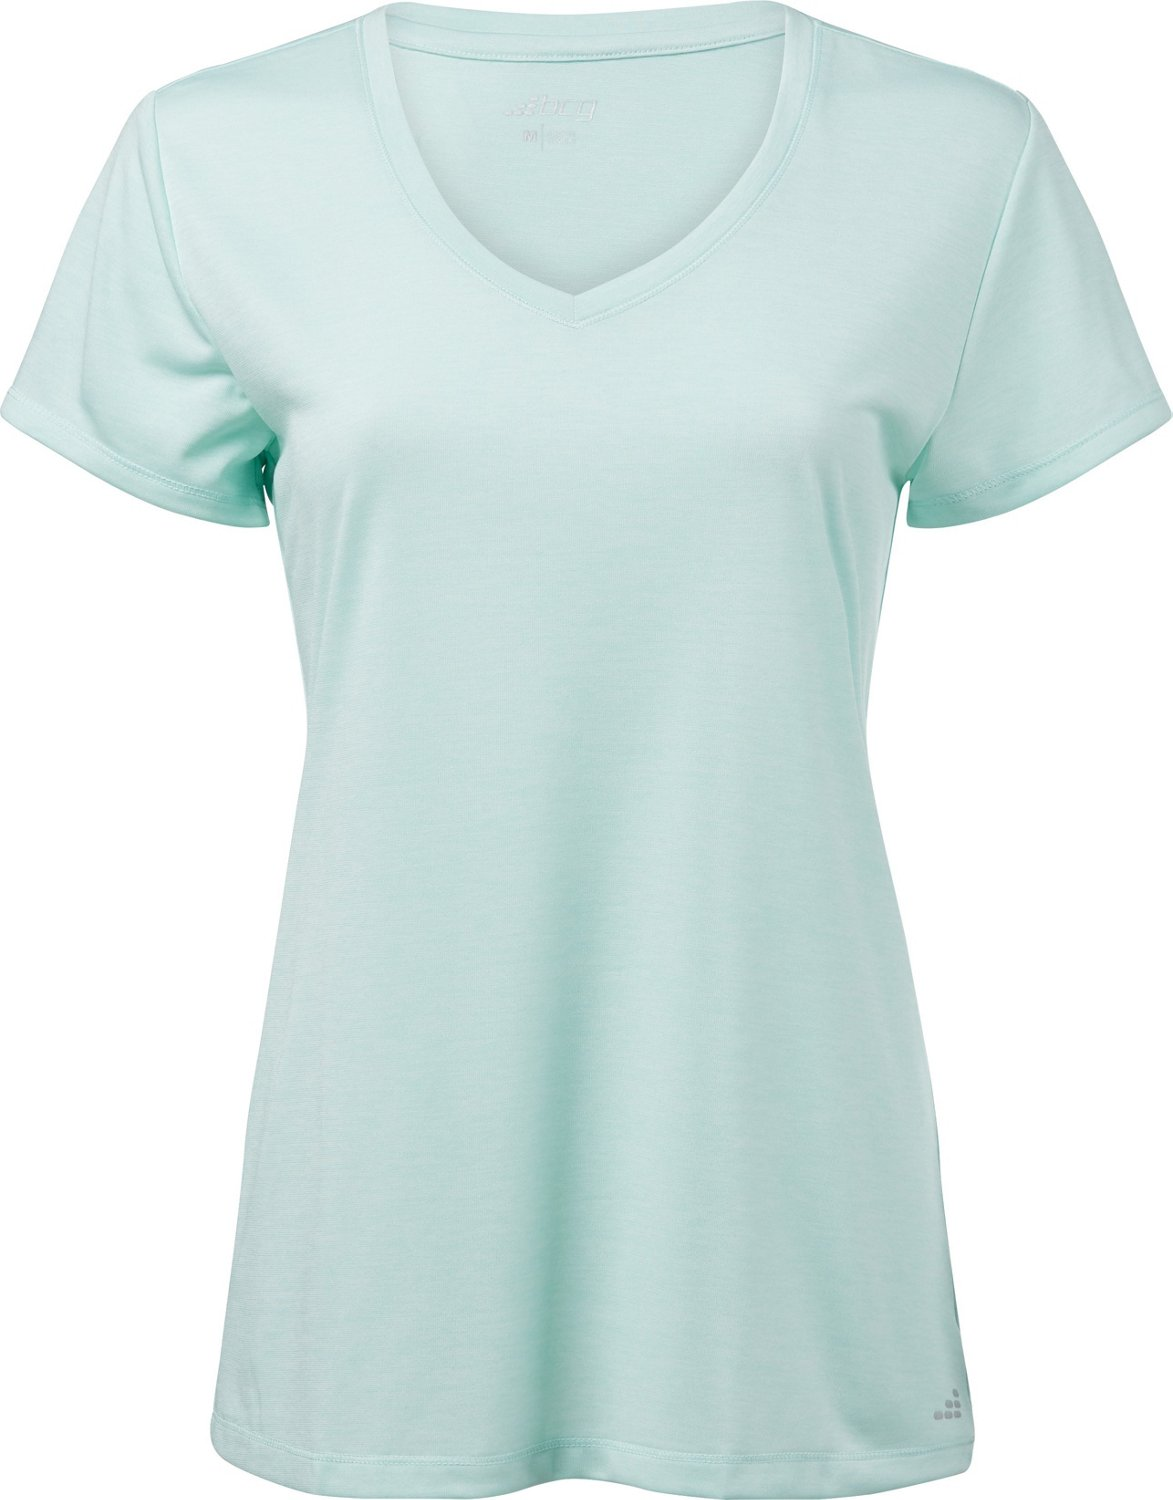 6846d79eaa69 Display product reviews for BCG Women's Digi Turbo T-shirt